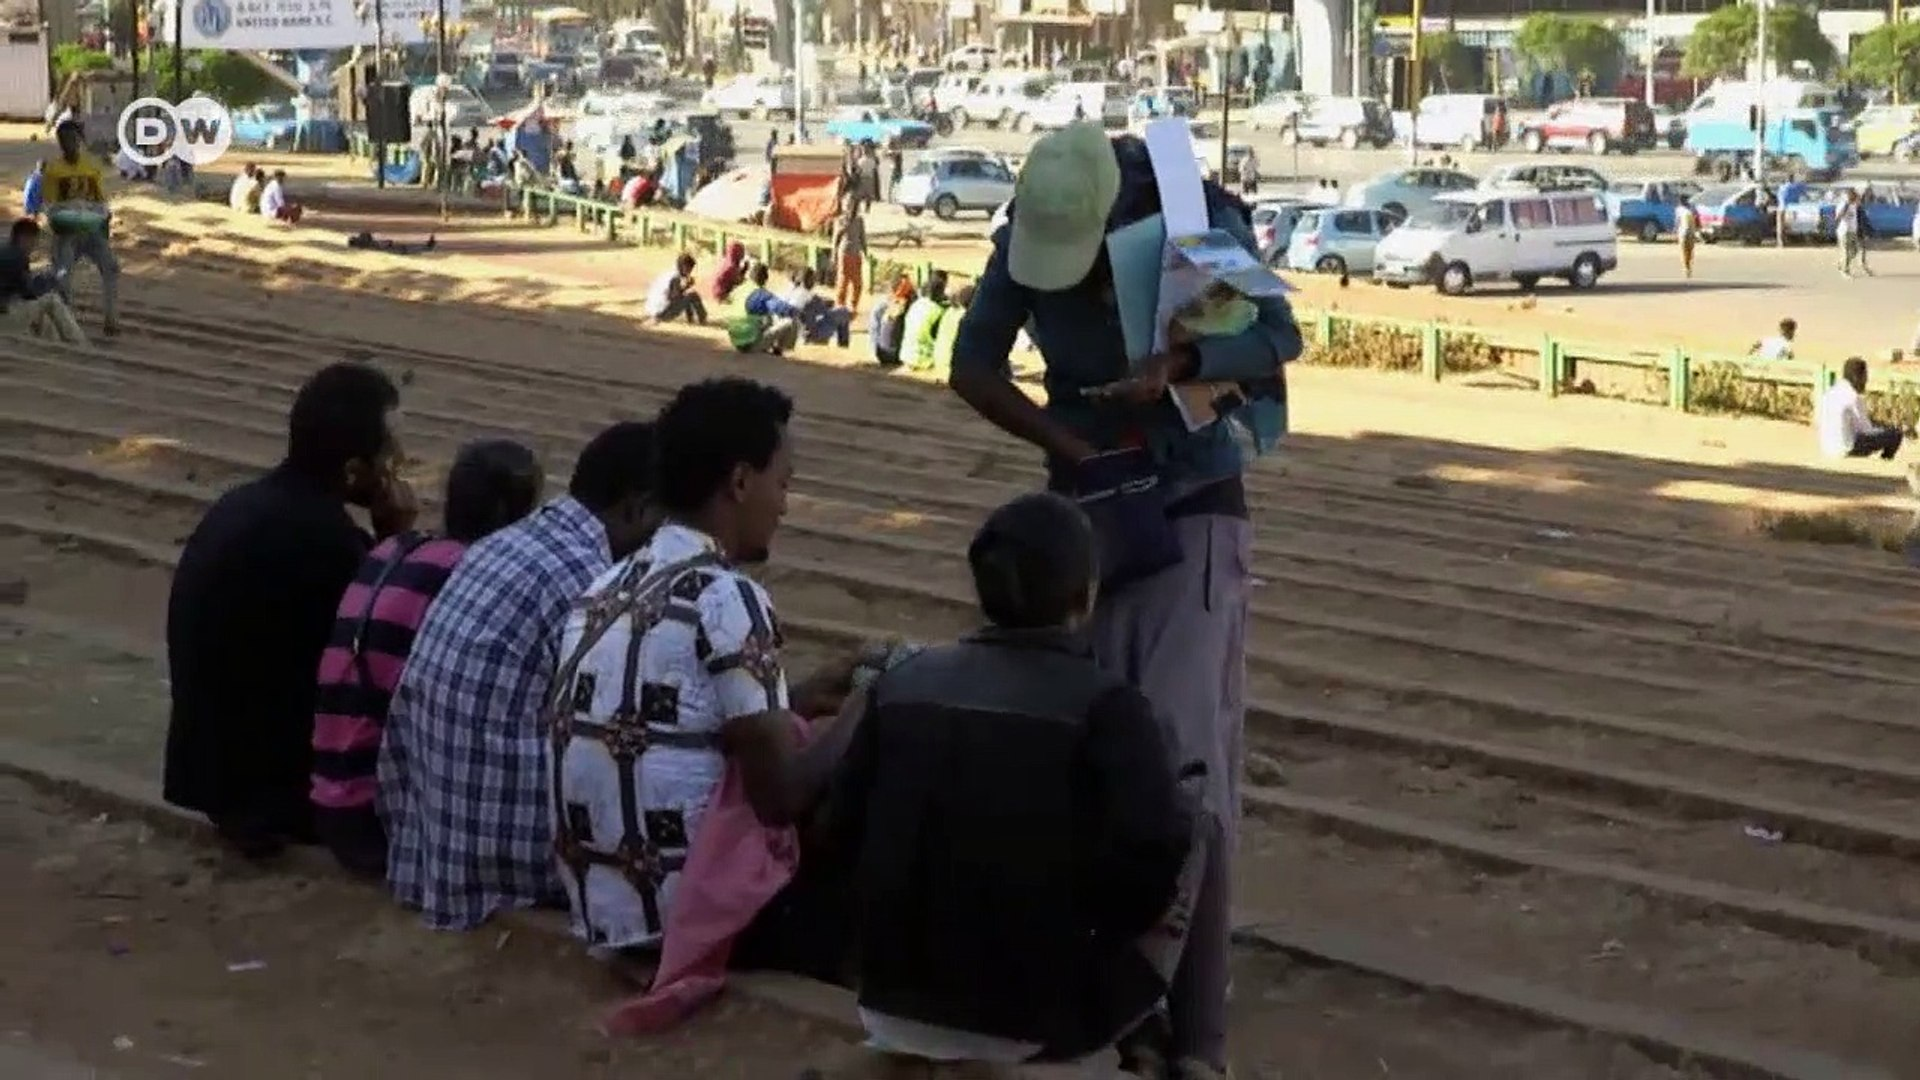 Ethiopia: The plight of street children in Addis Ababa | DW News